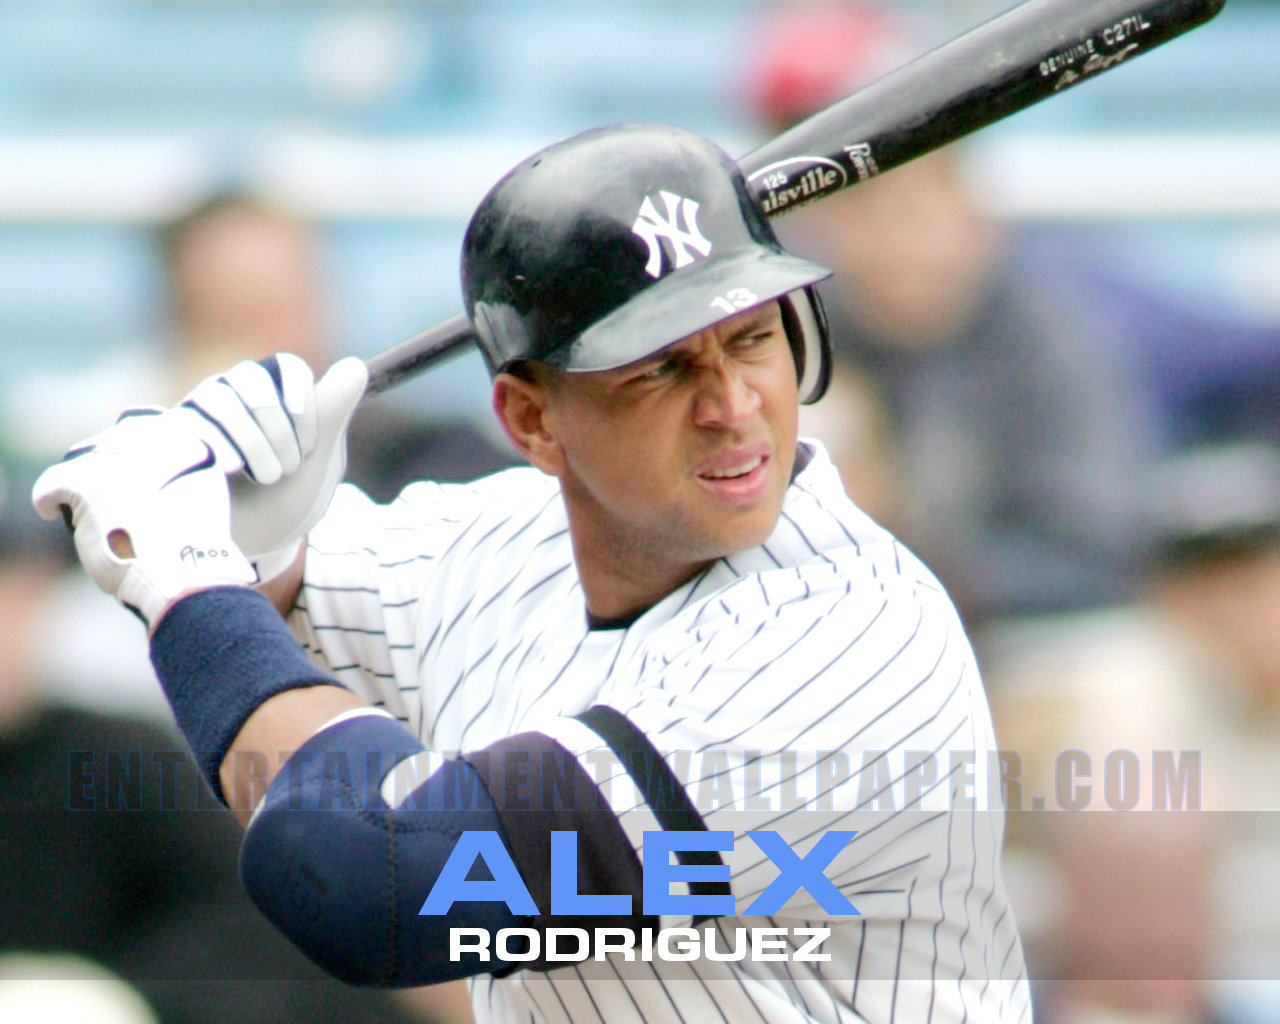 cat love alex rodriguez wallpaper hd